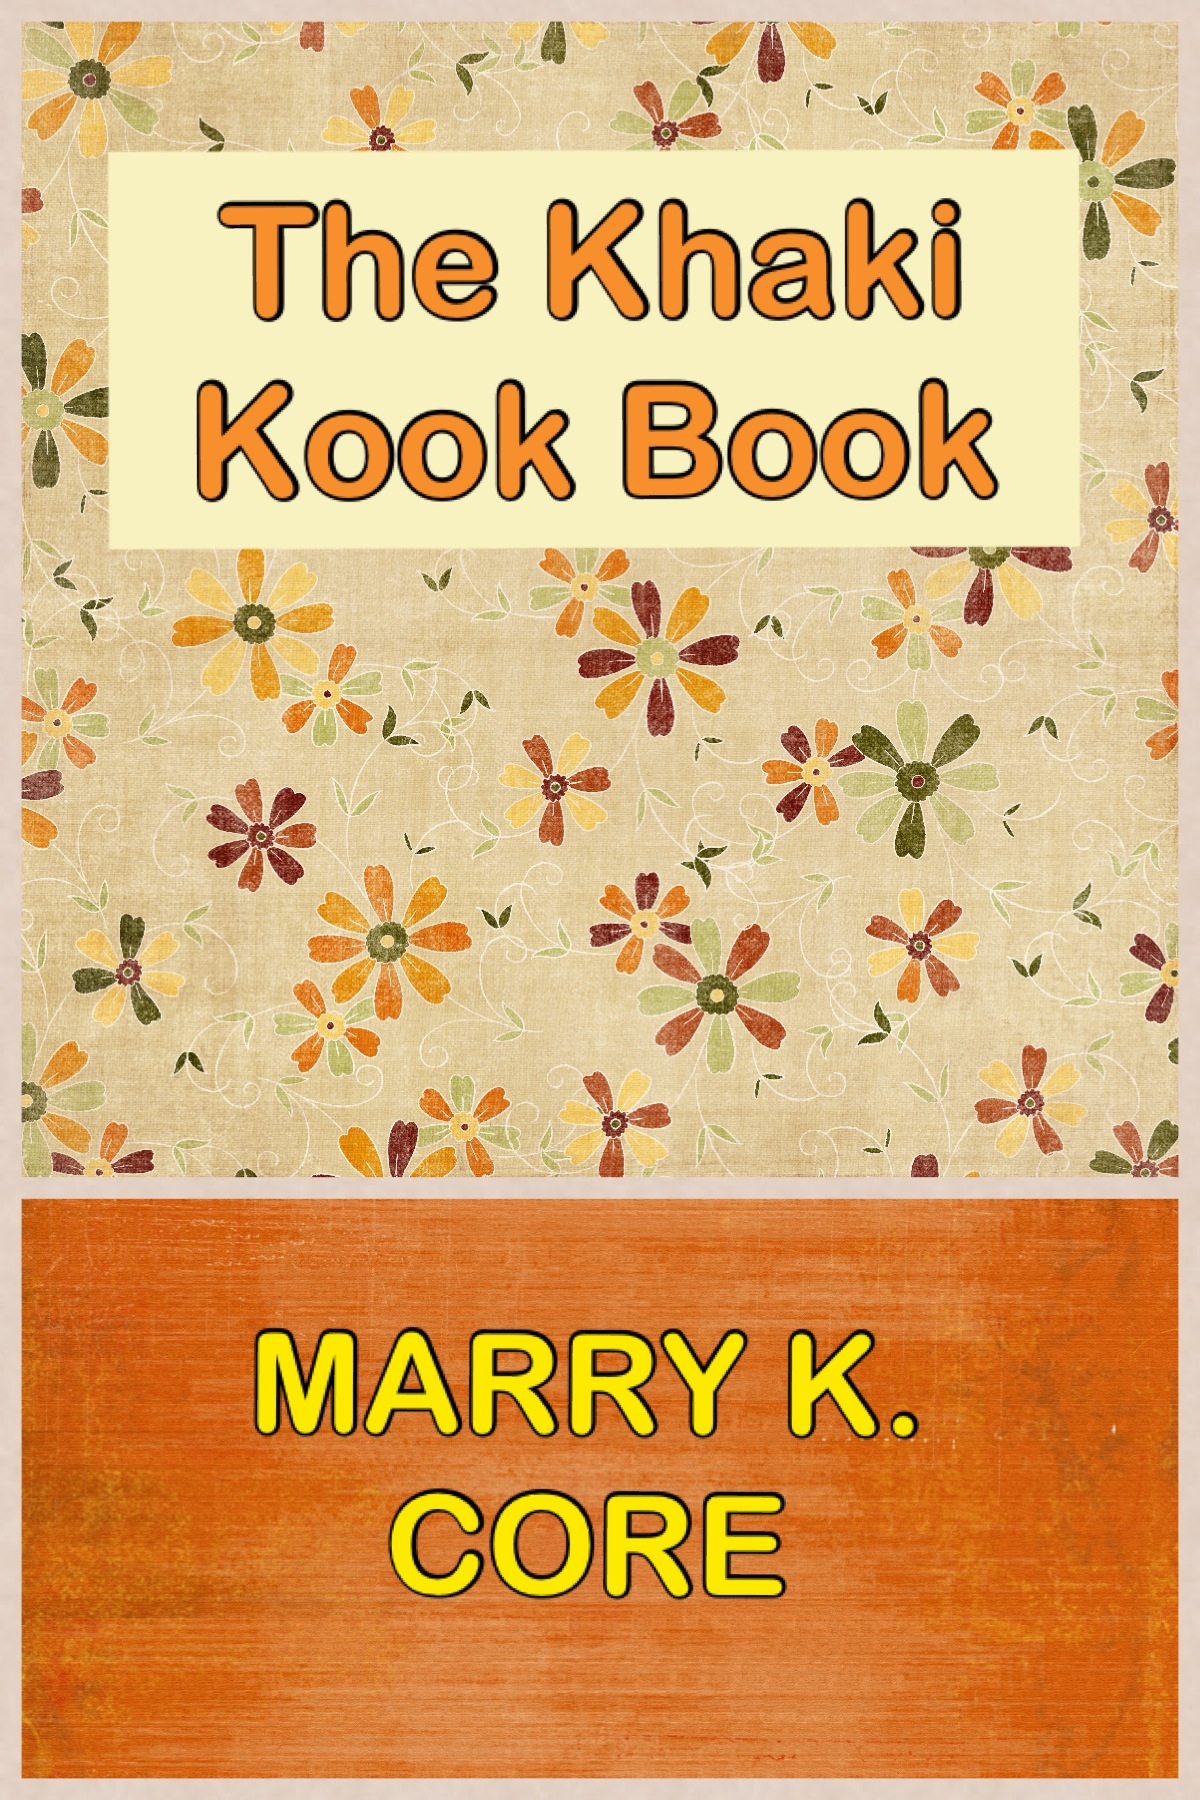 THE KHAKI KOOK BOOK with Original Illustration